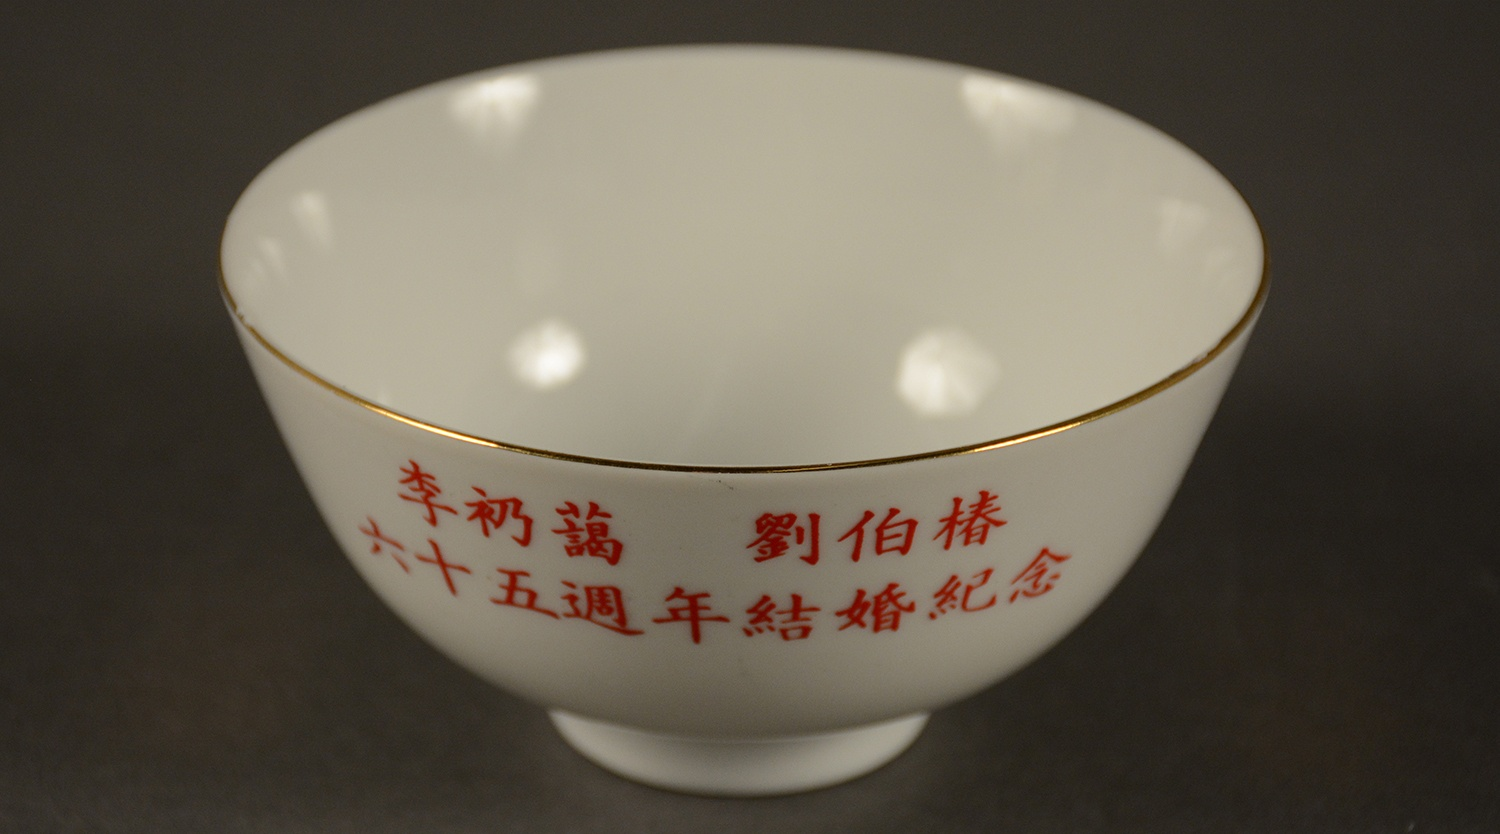 Lew Shee Lee and Git Lee's 65th anniversary gift bowl (two views), 1981. It was customary for the celebrating couple to give guests bowls, spoons, or chop sticks. Gift of the Git Lee family, 2004.154.3, Heinz History Center Museum Collections.